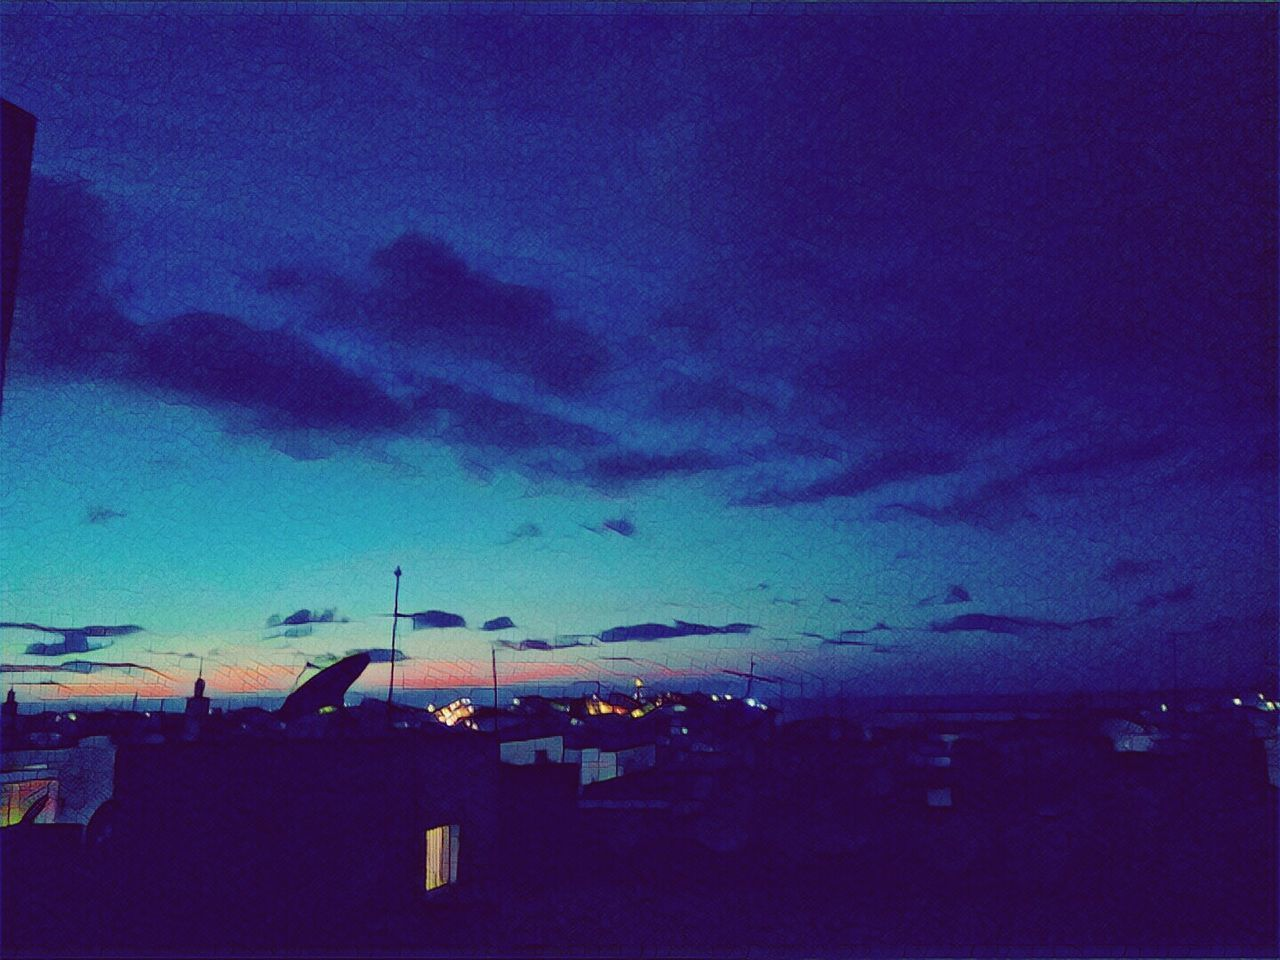 View of my room by night (dragon effect on prisma) Sky Outdoors Nature No People Colors Blue Sea Nuage Lumière Light And Shadow Cityscape Building Exterior City Built Structure Architecture Day First Eyeem Photo